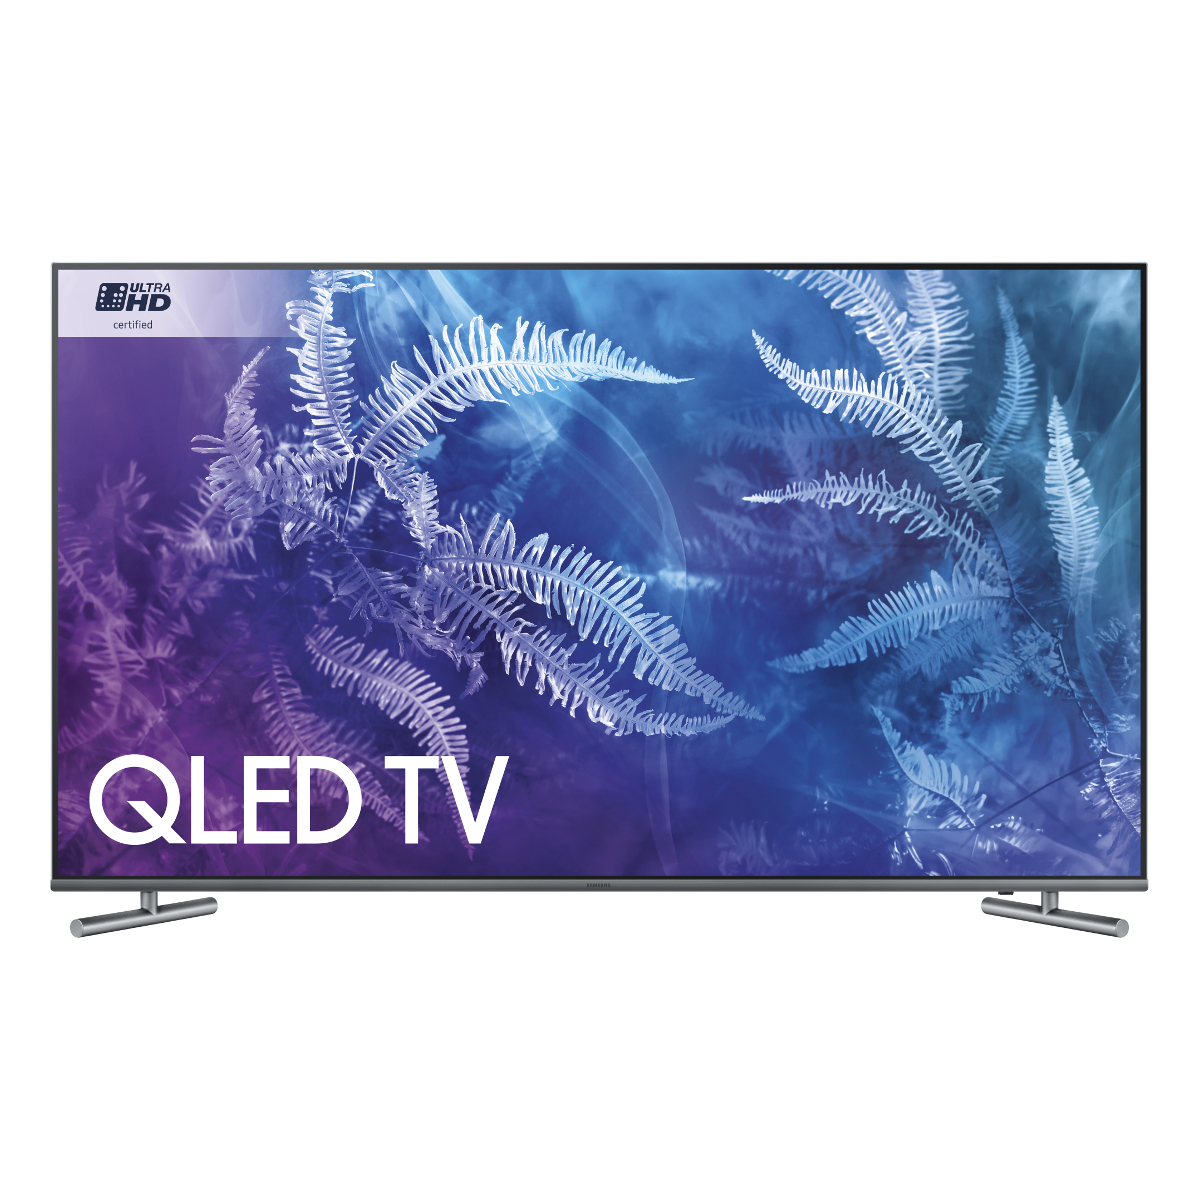 Samsung Qe55q6fam 55 Flat Qled Lite 4k Smart Led Tv With Freeview  # Deco Table Tele Plus Homecimema